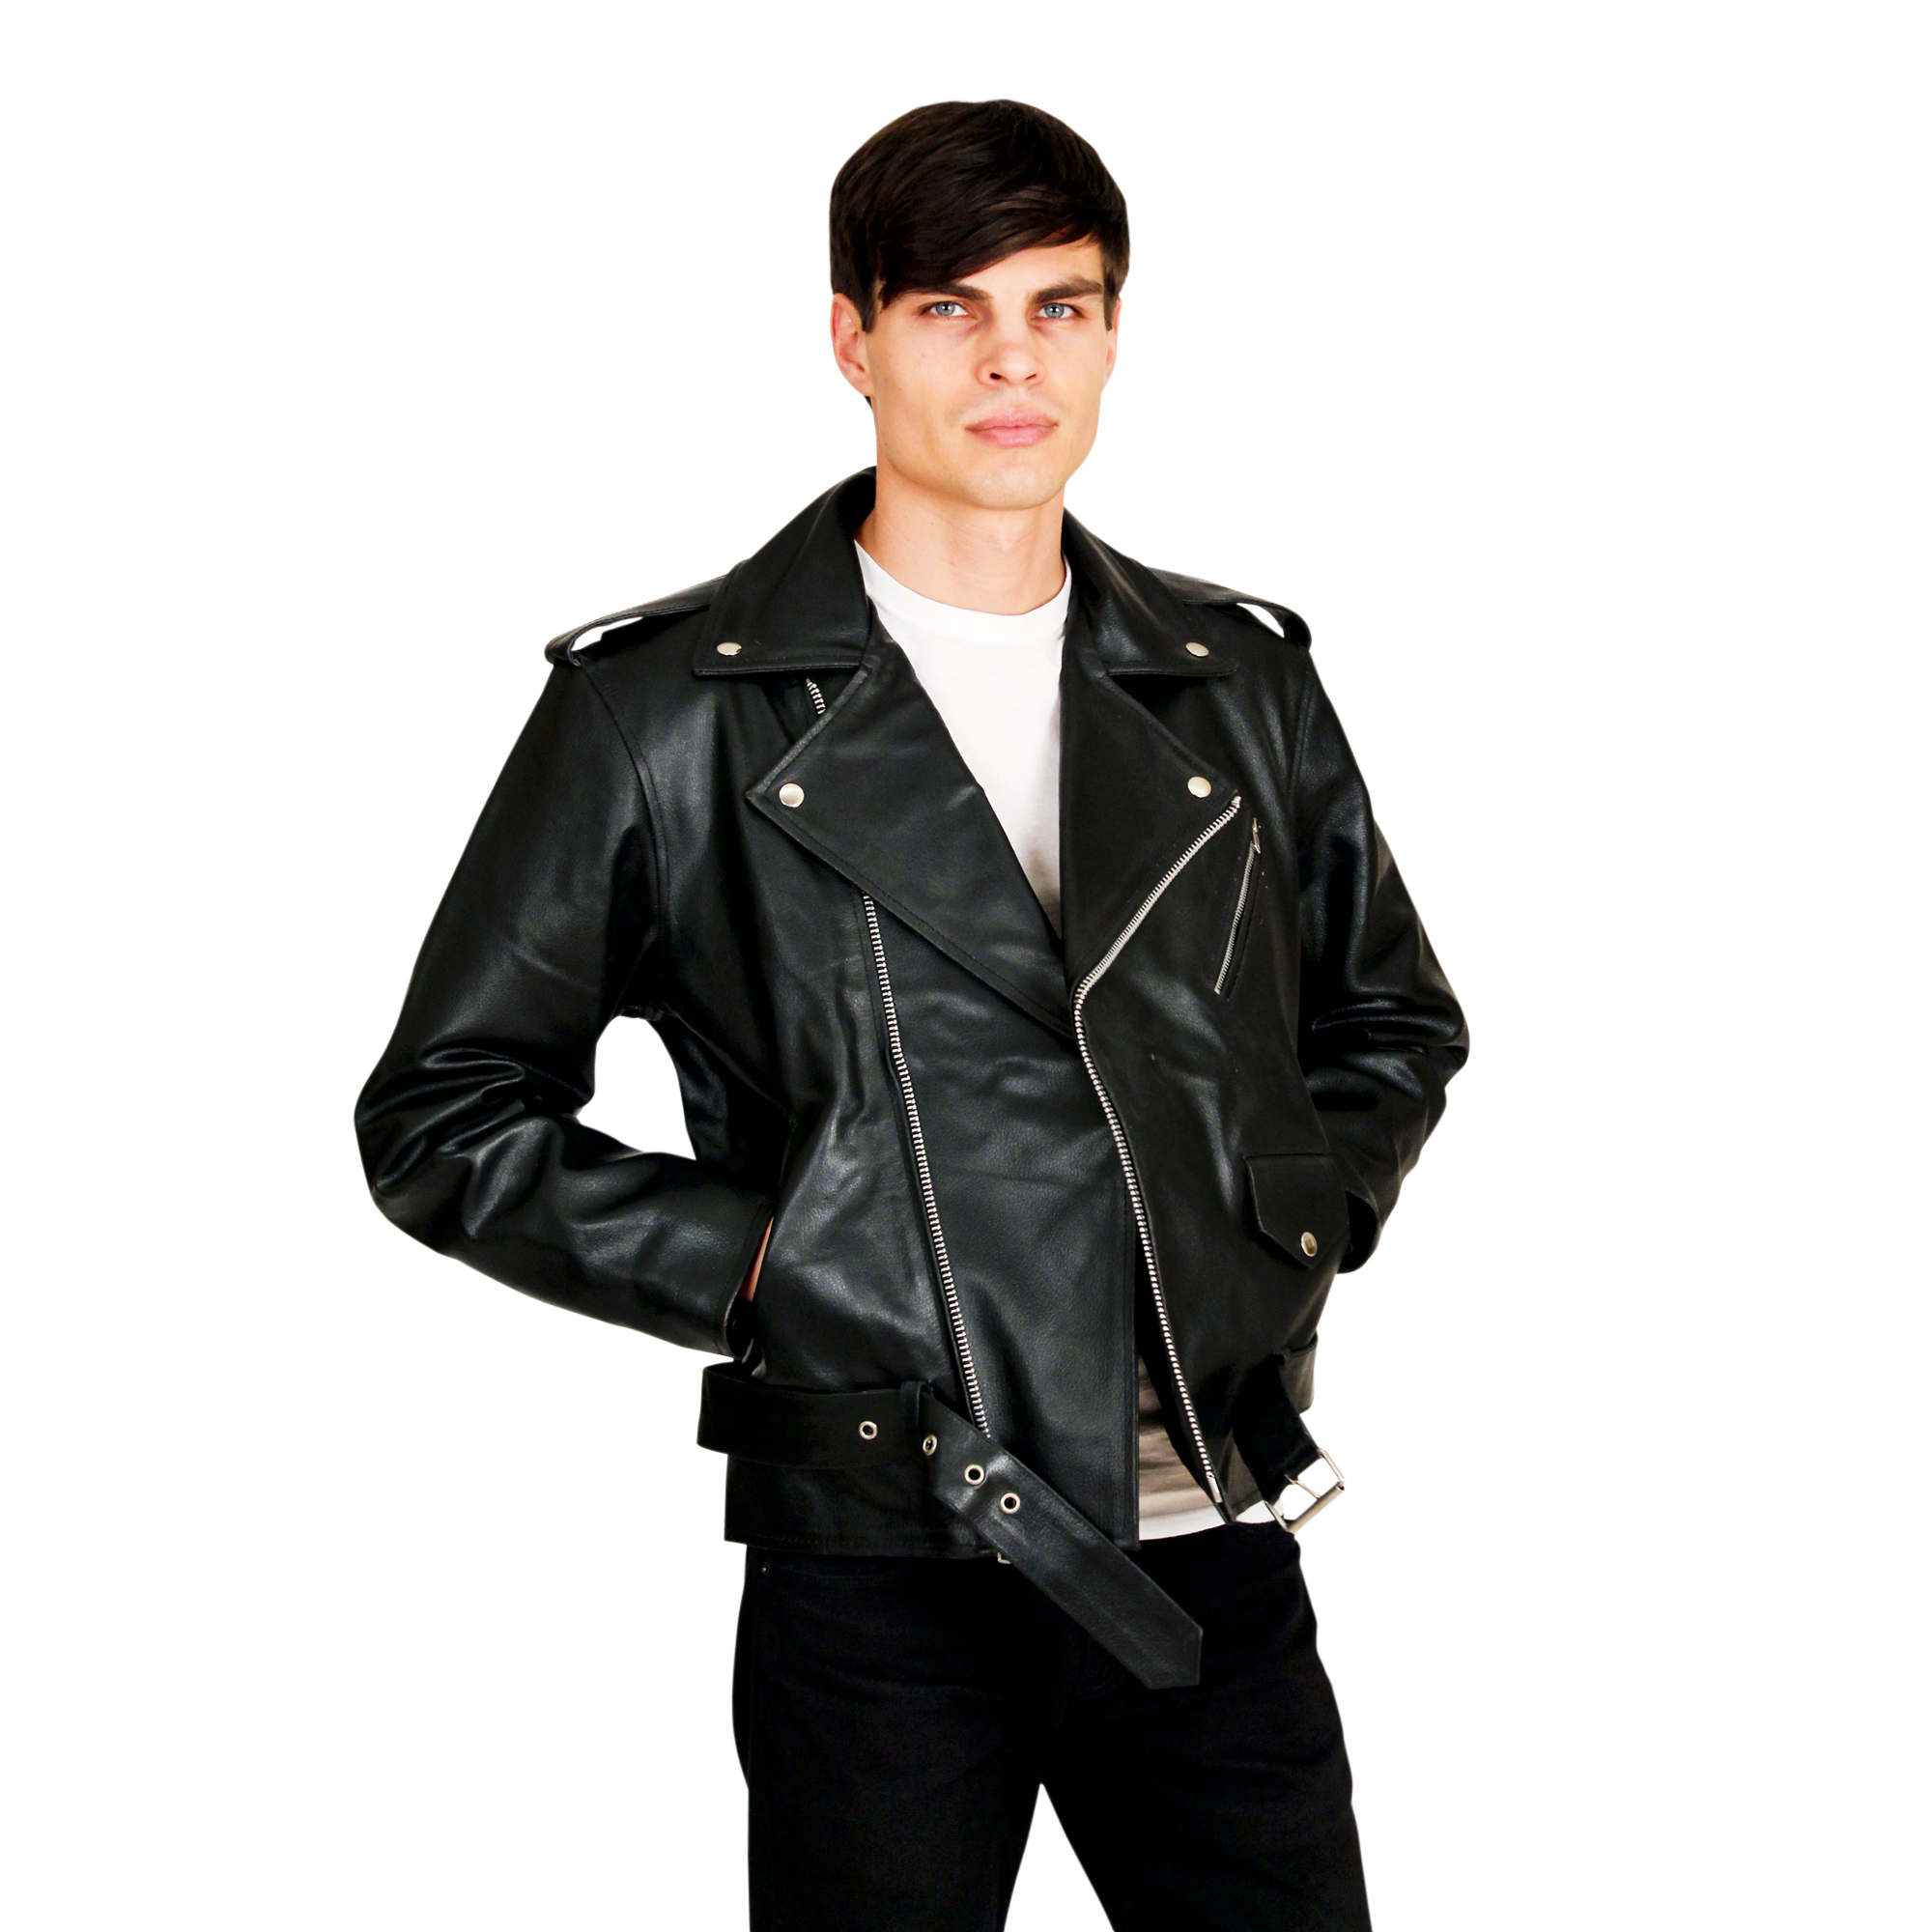 Men's Leather Biker Jacket  - $65 Colors: Black. Sizes:  Medium Large X-Large 2XL.(+$10) ... Men's Basic Biker Jacket in top quality cowhide leather with zipout quilted lining. Imported. Ava